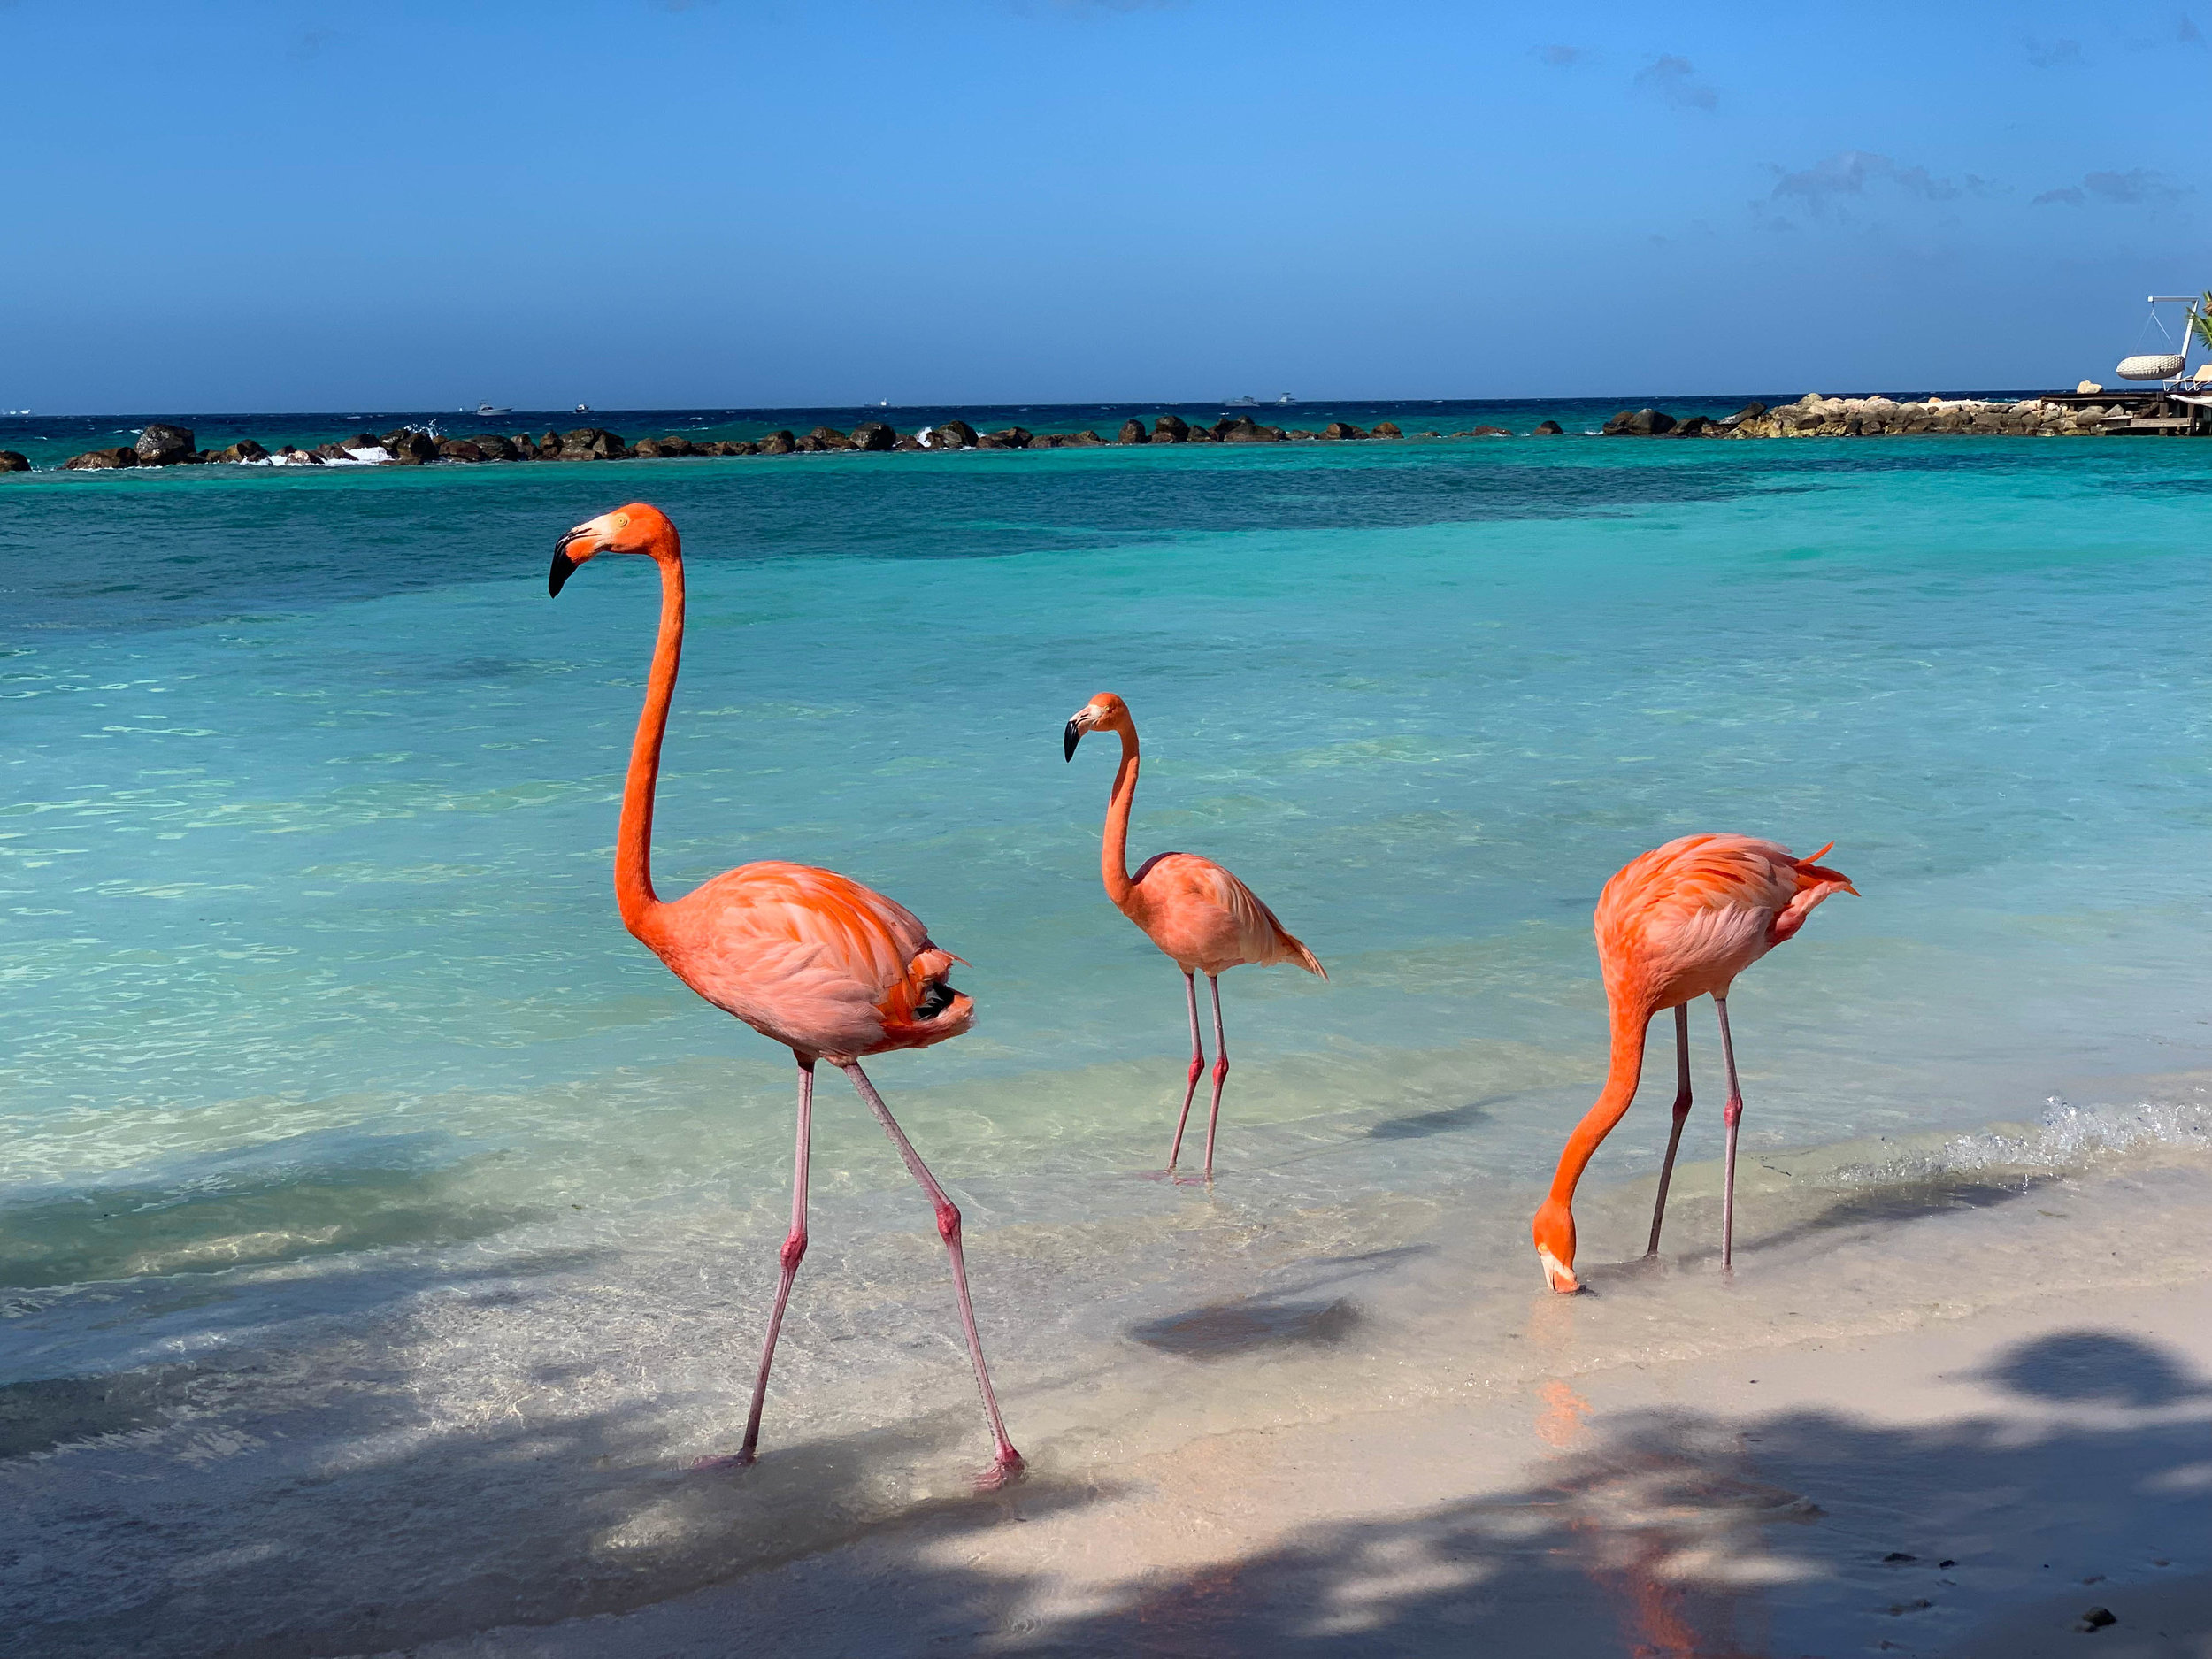 Flamingo Beach on Renaissance Island